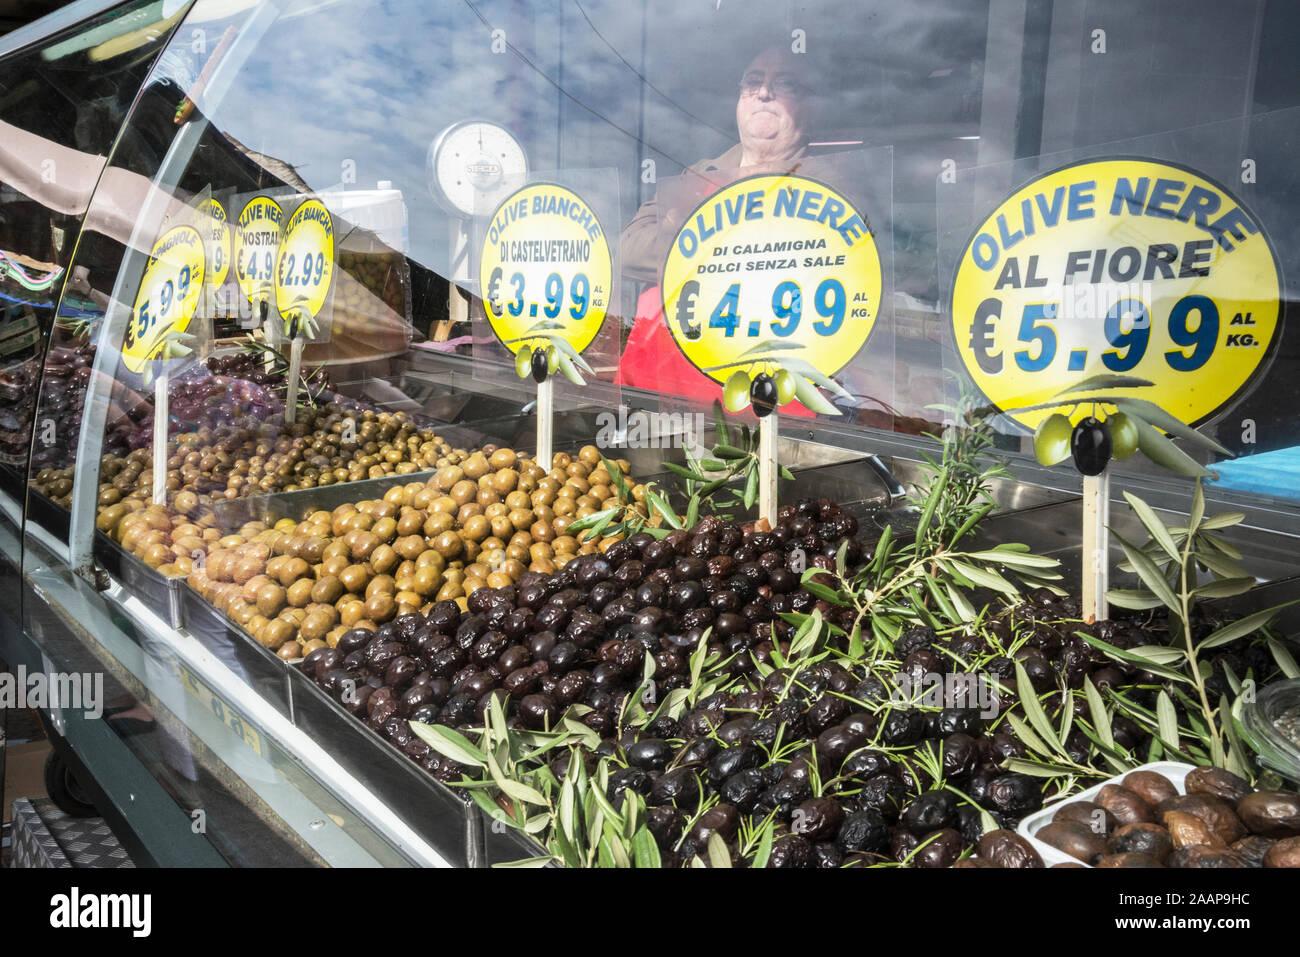 D Antoni Rattan A Castelvetrano.Olive Stand Stock Photos Olive Stand Stock Images Page 2 Alamy